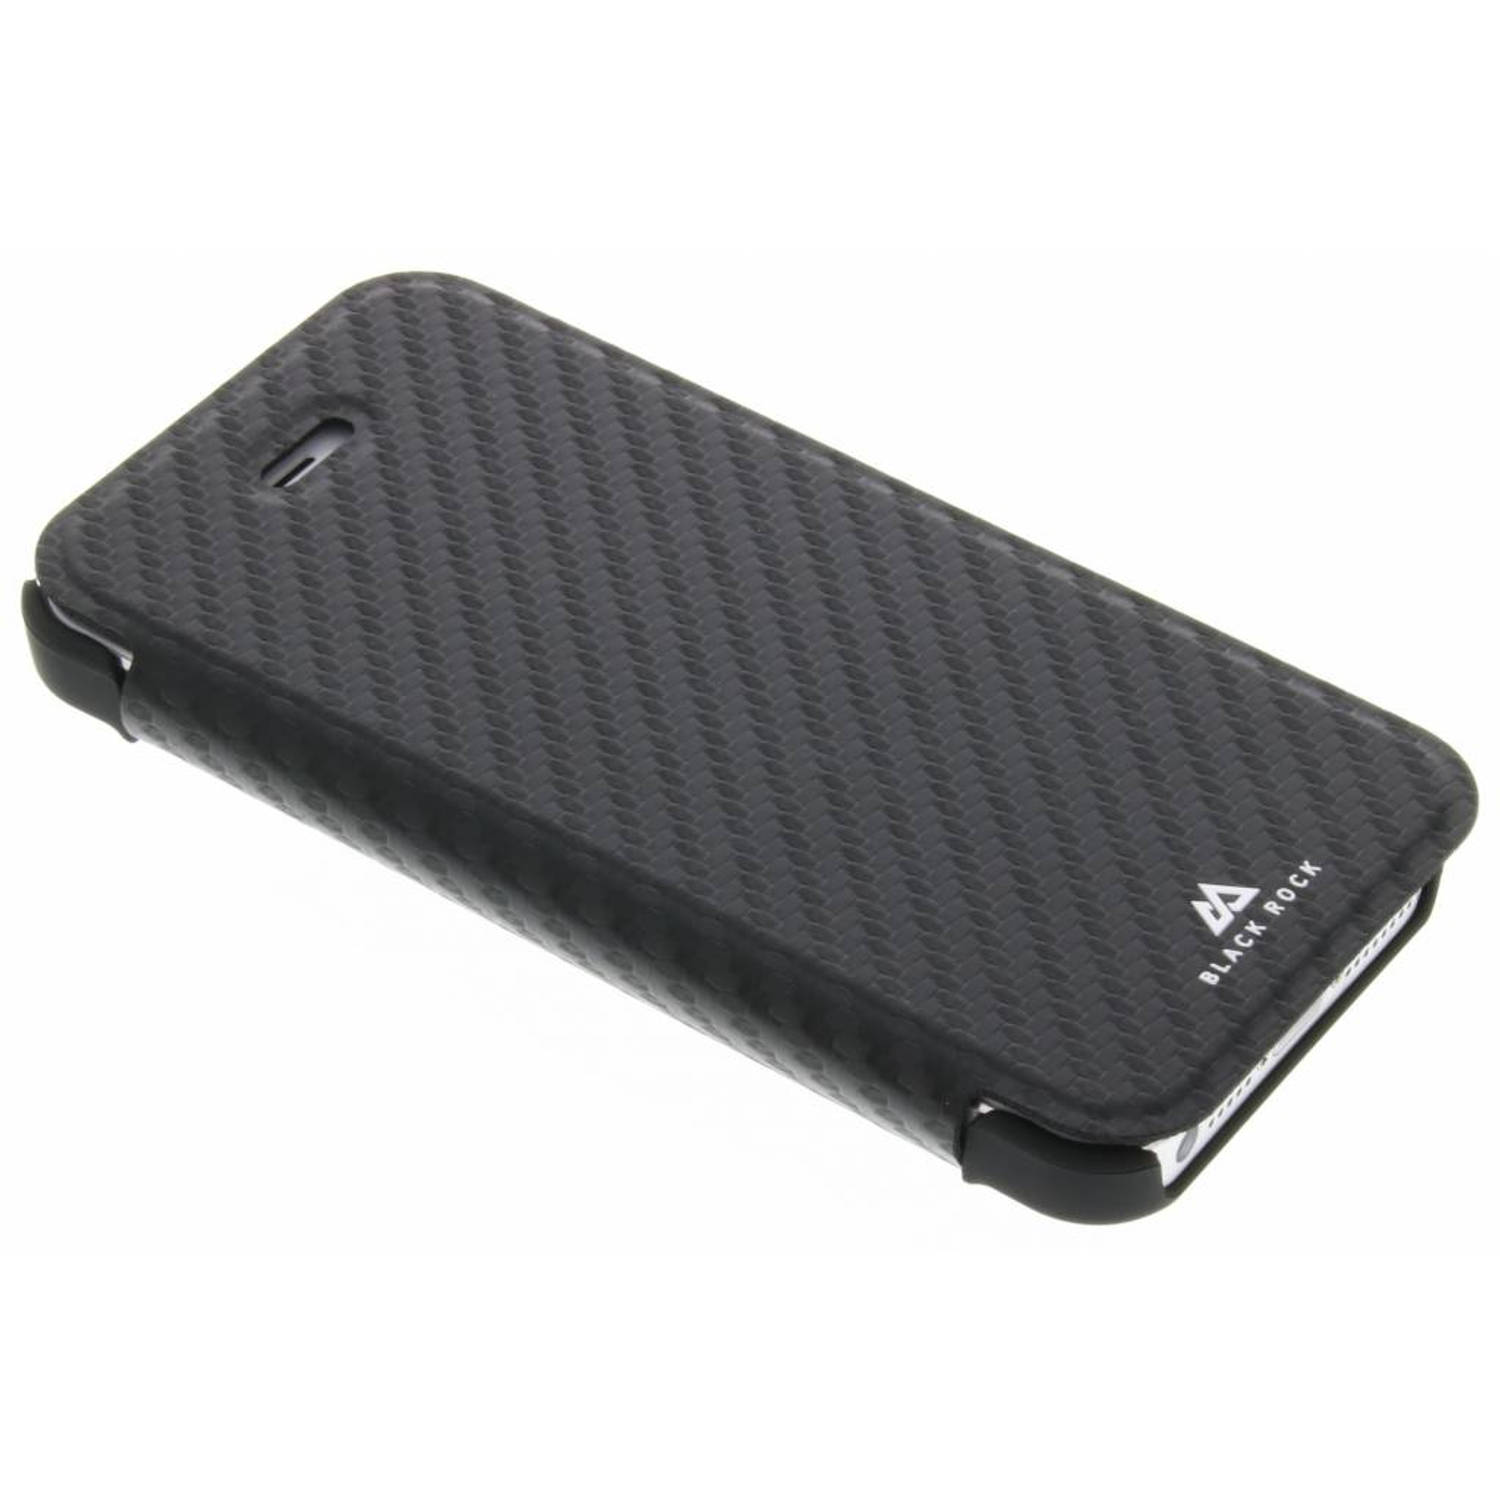 Flex Carbon Booklet Case voor de iPhone 5 / 5s / SE - Zwart